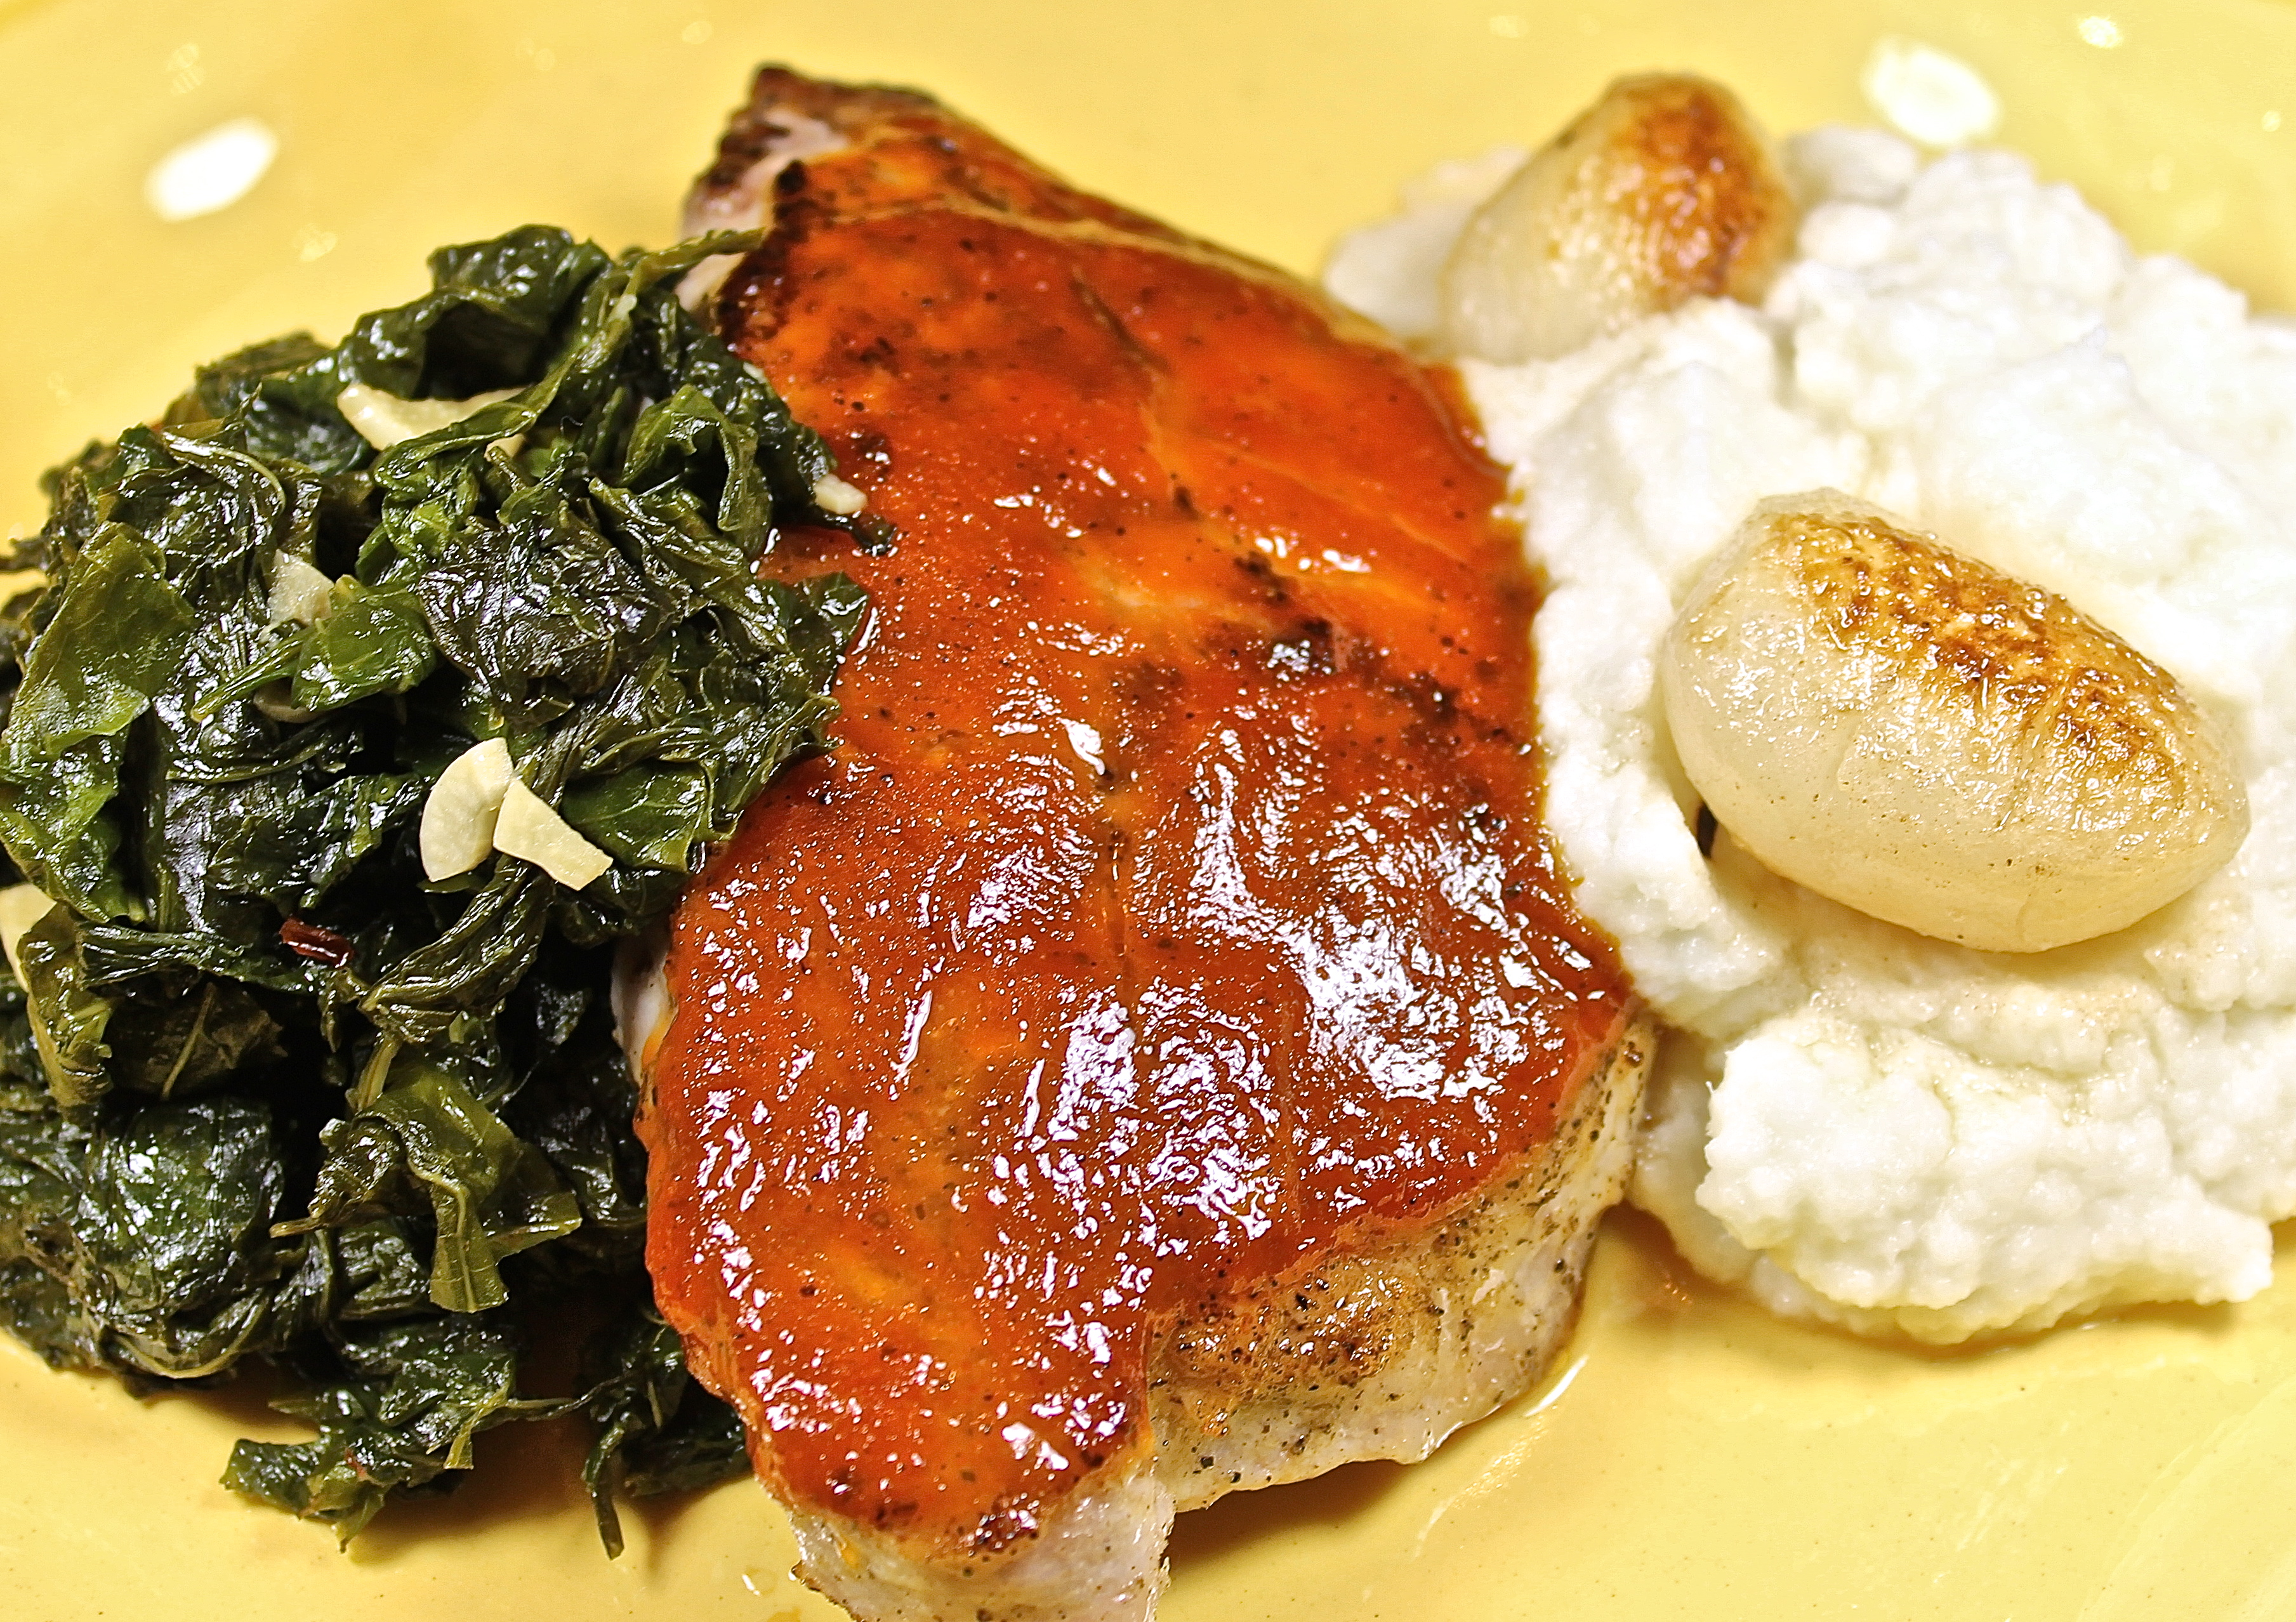 Bourbon And Brown Sugar Glazed Pork Chops With Turnips Served Three ...